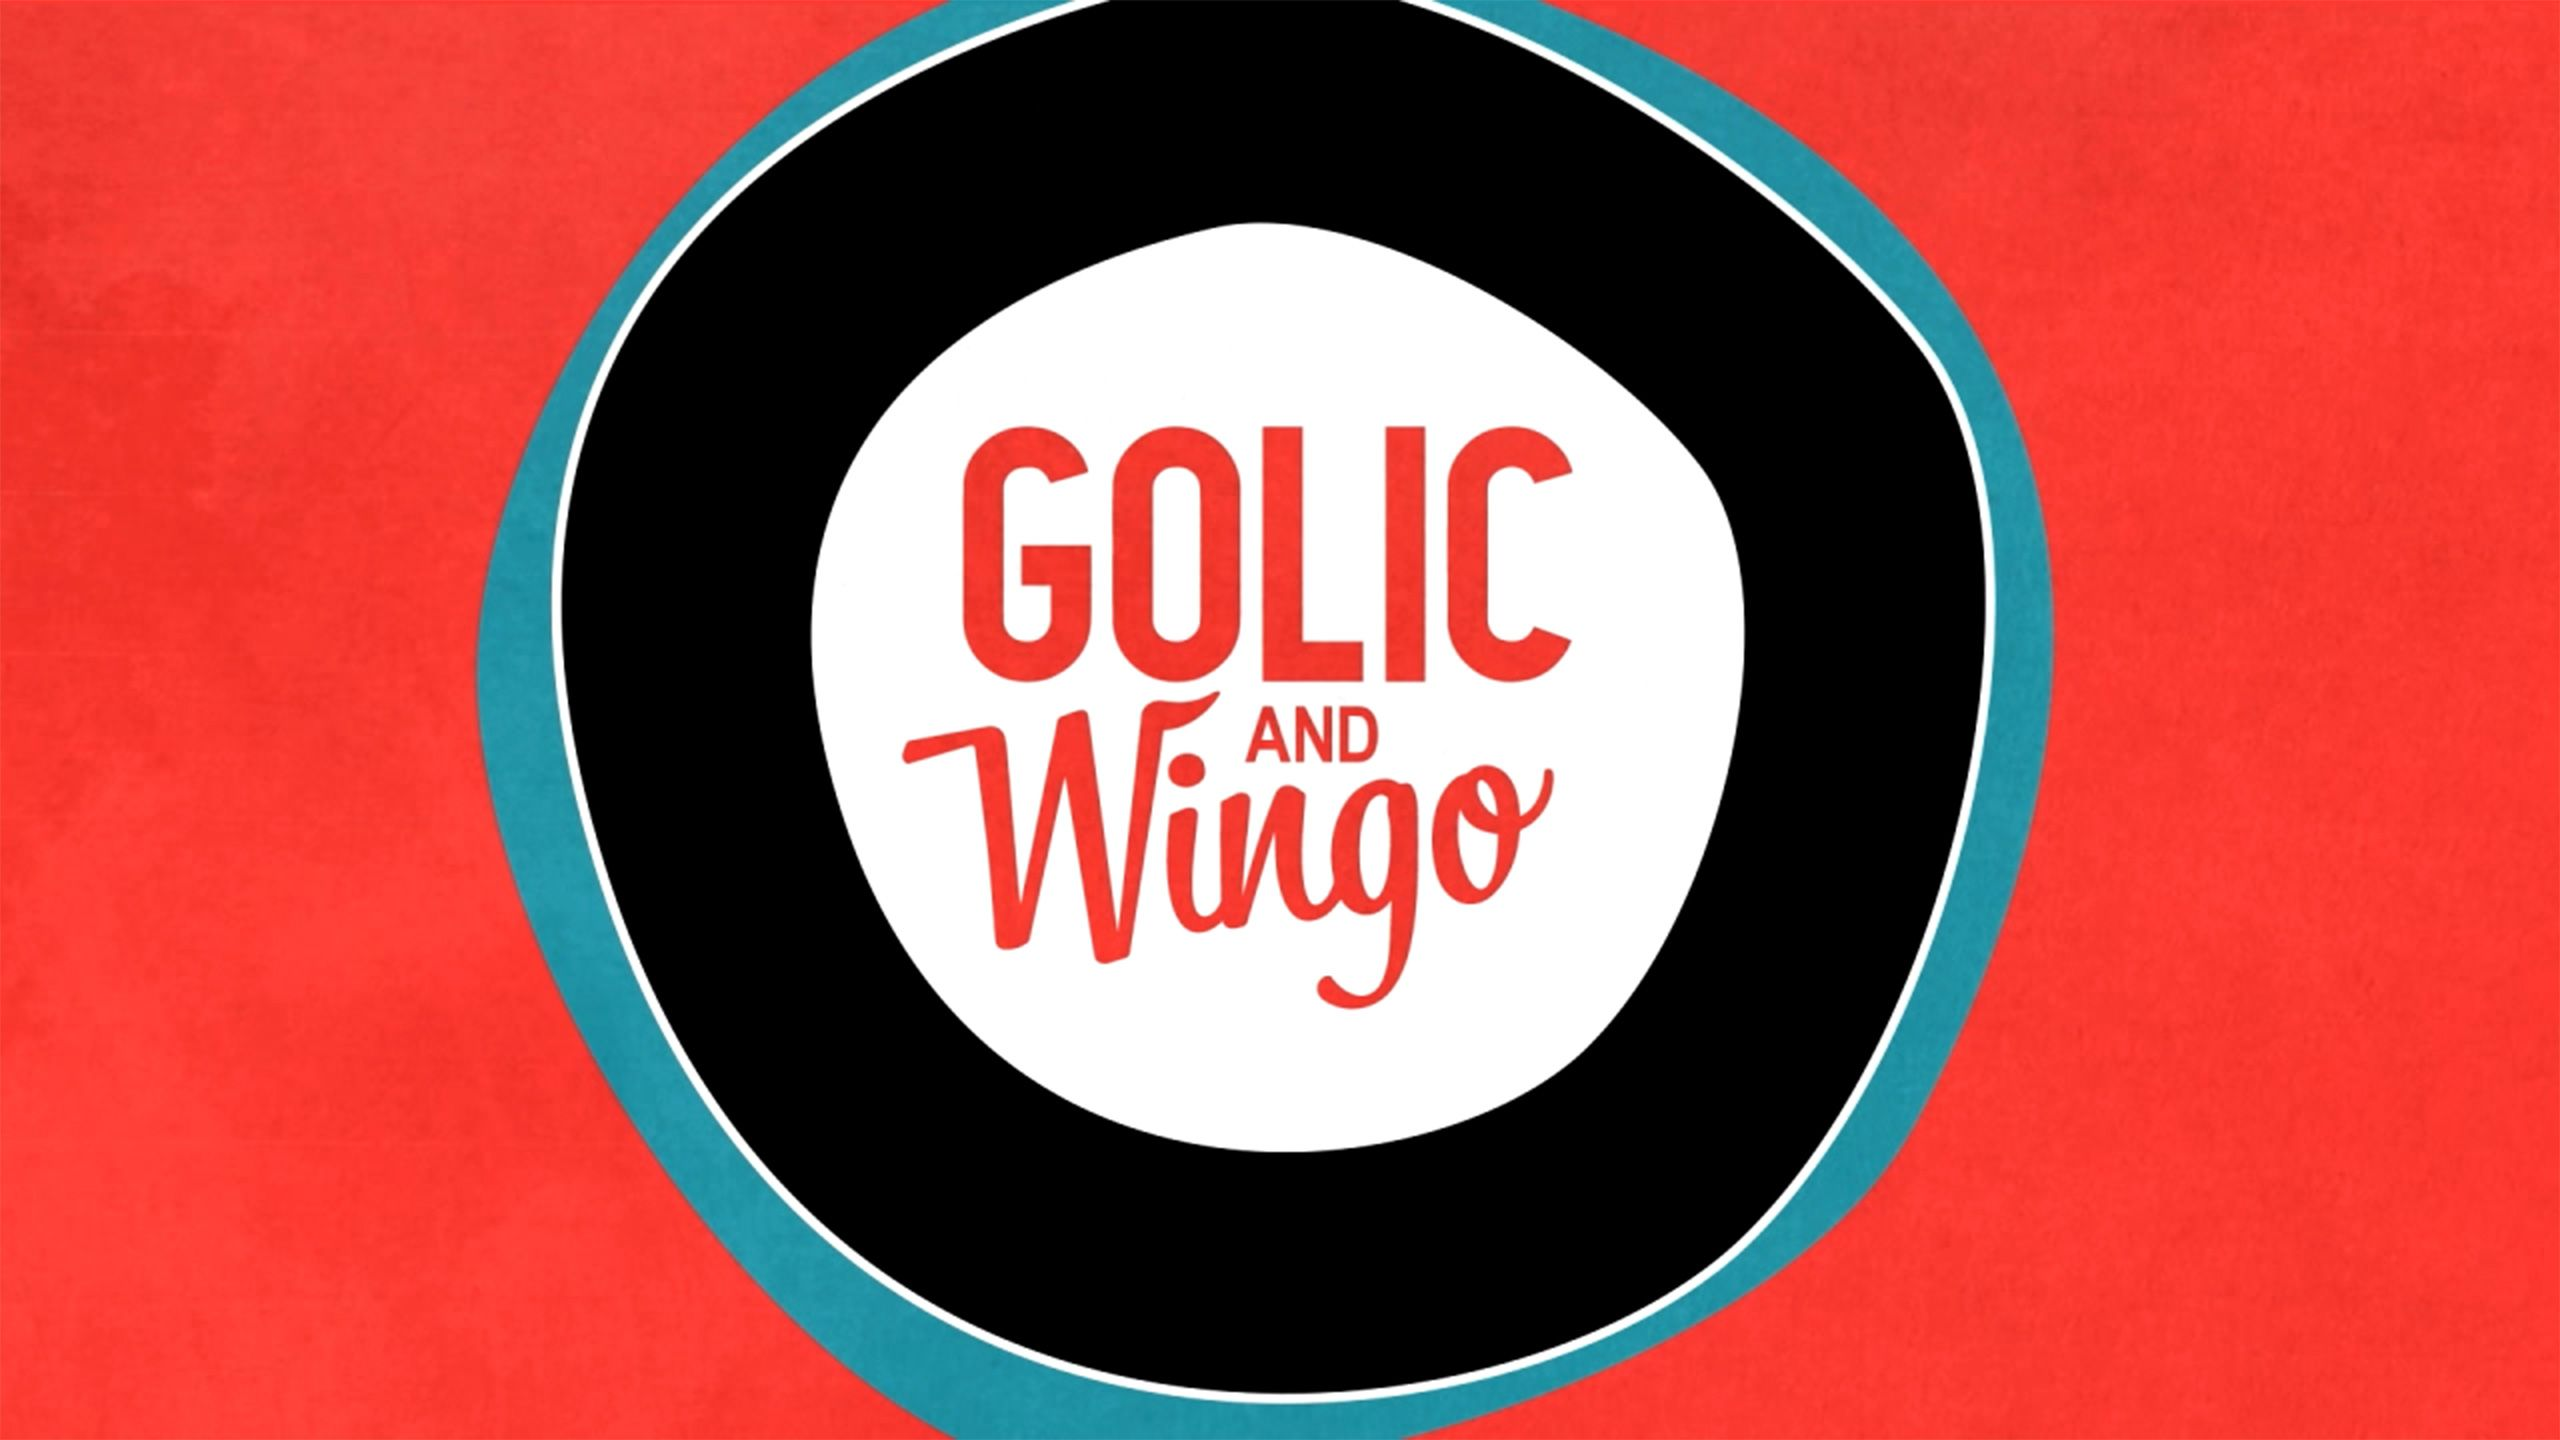 Wed, 12/13 - Golic and Wingo